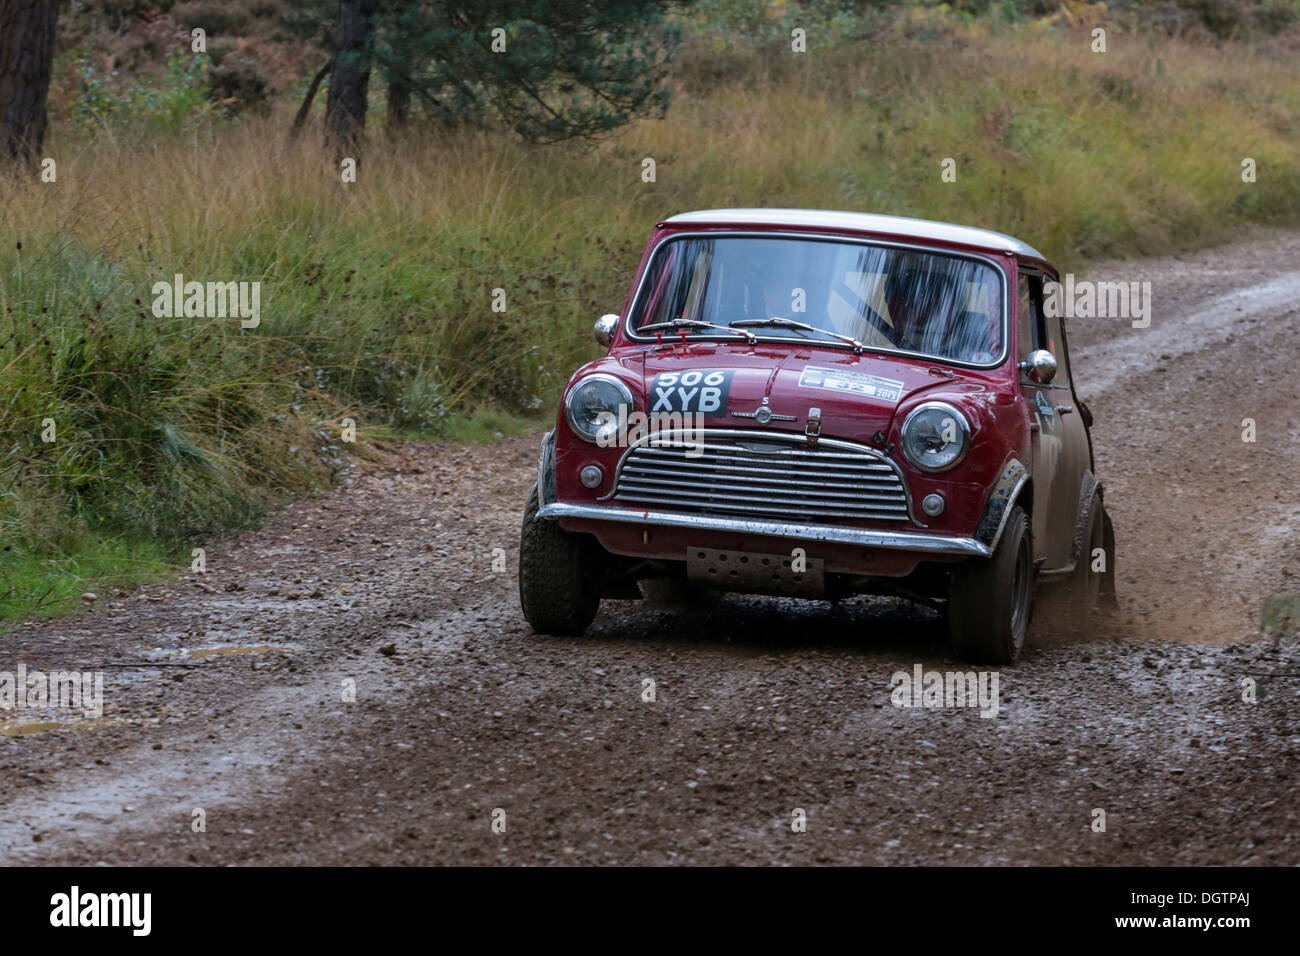 Morris Mini Cooper taking part in the Rallye Sunseeker Historique 2013 - Stock Image